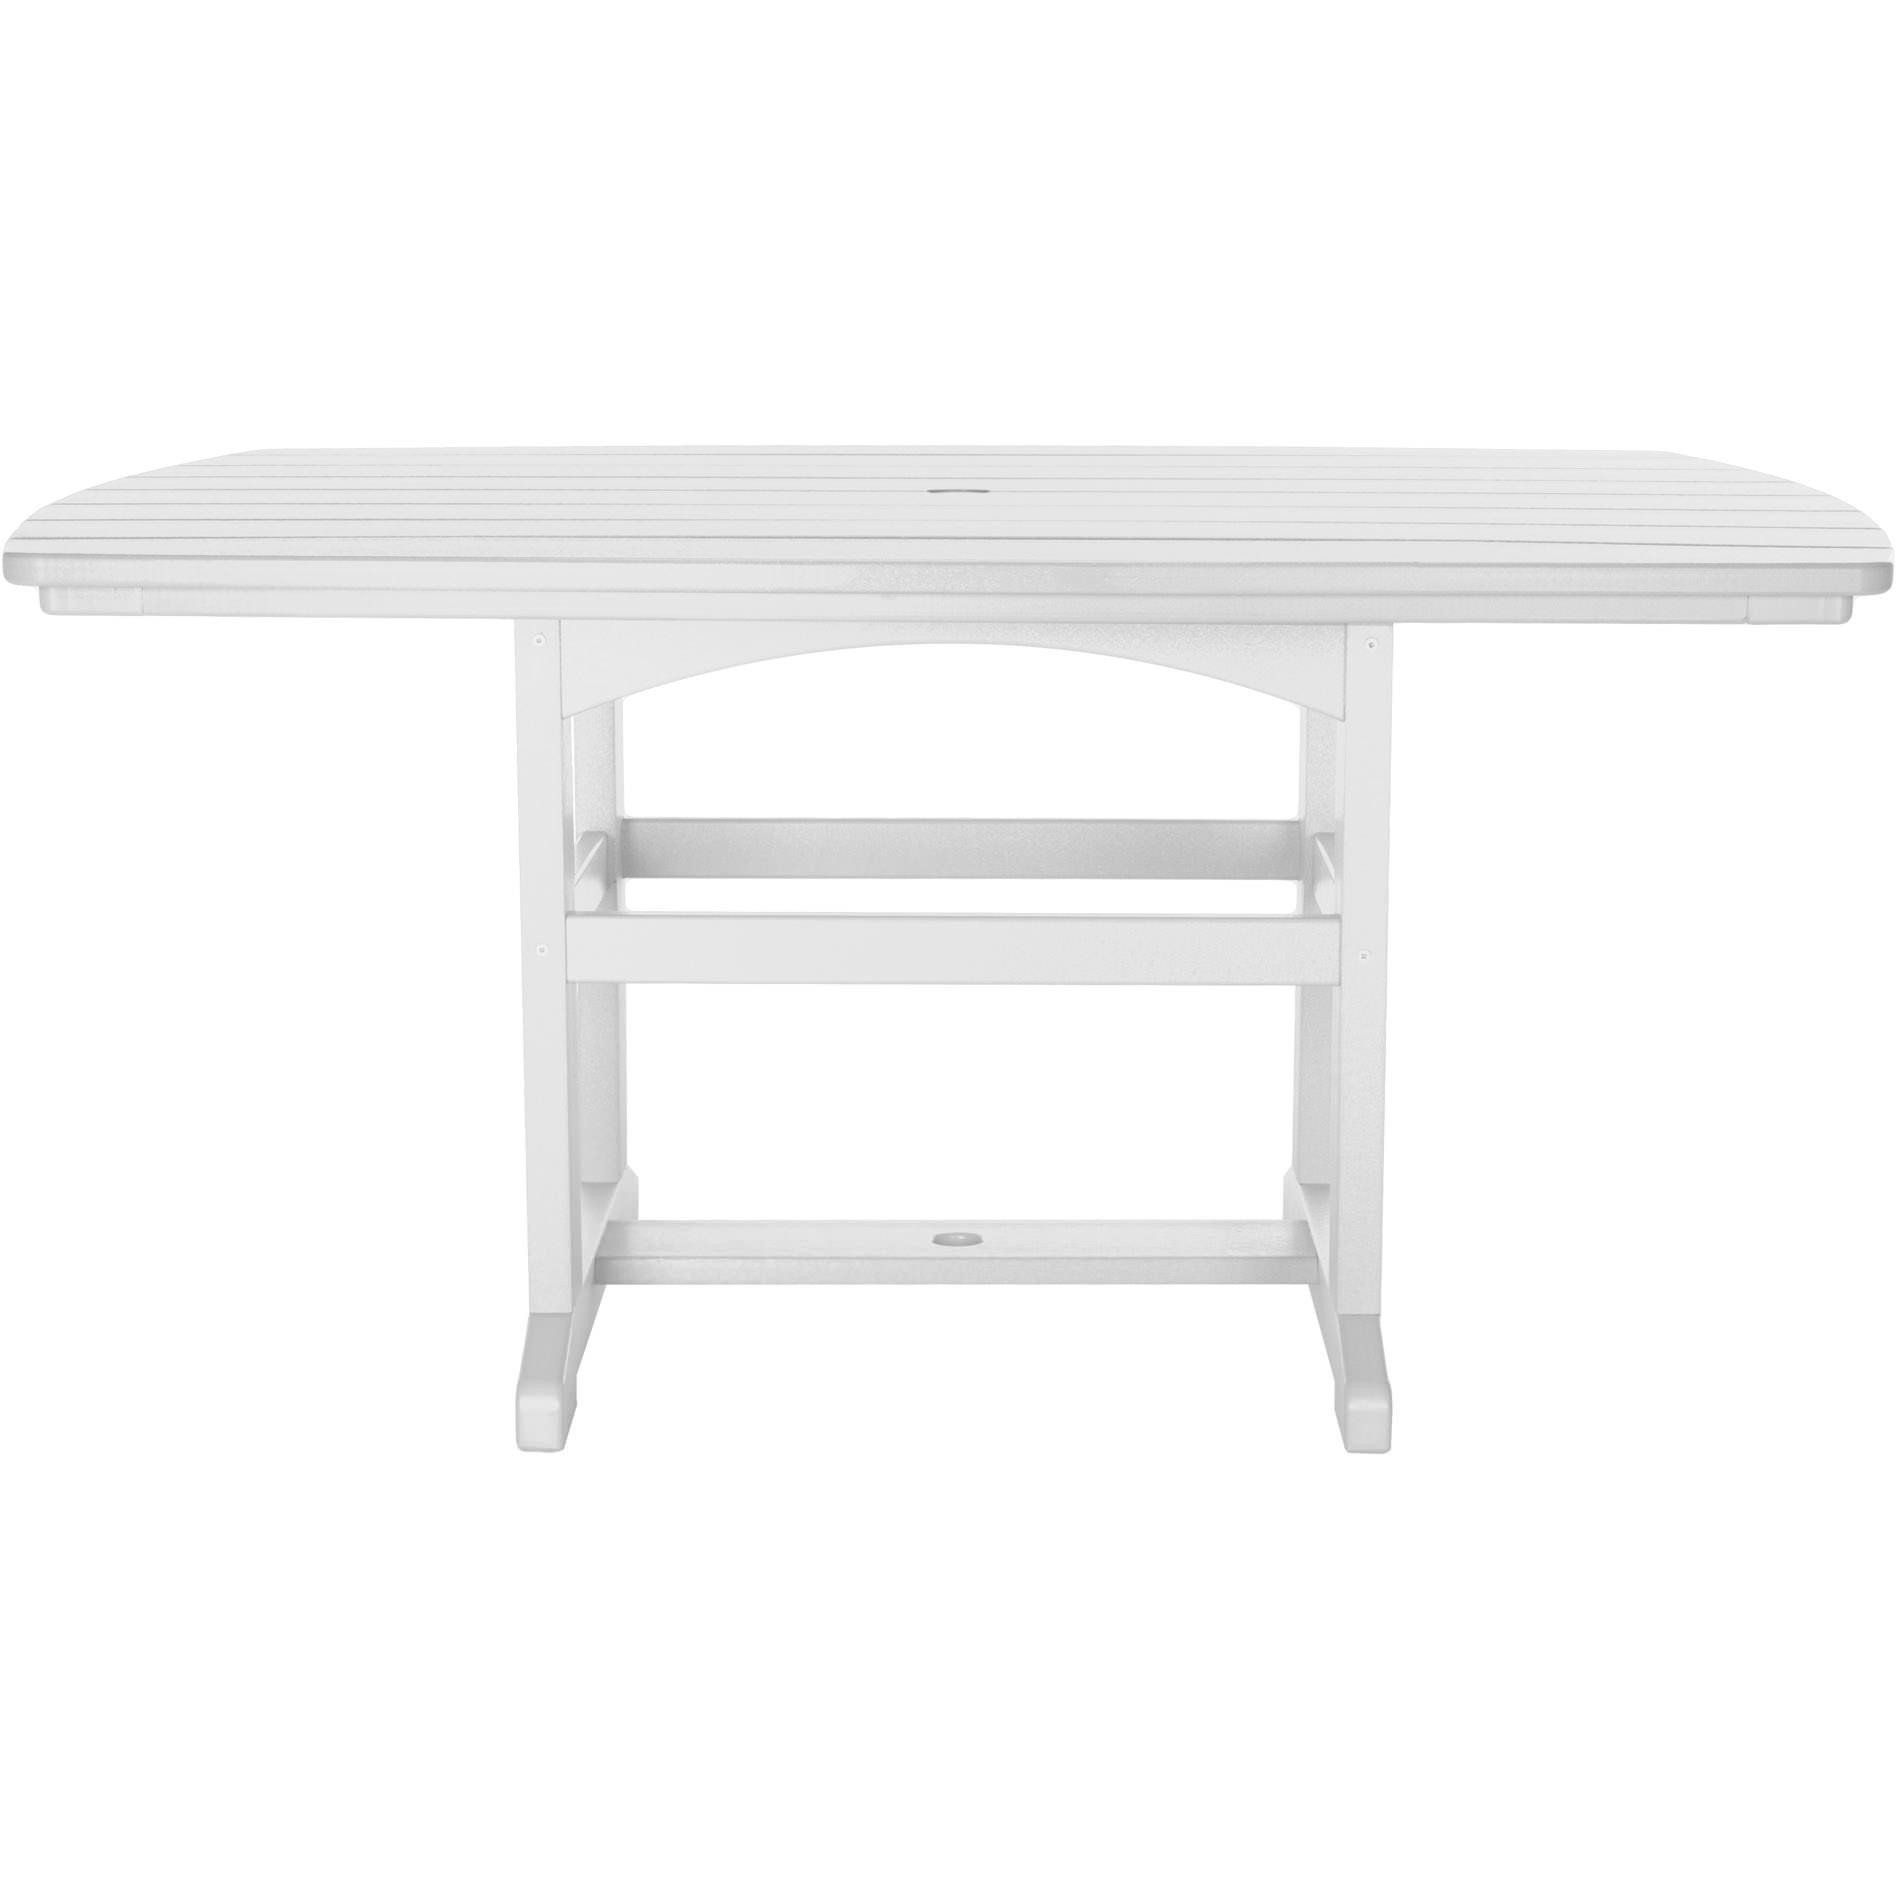 Pawleys Island Dining Table 60 In. X 46 In